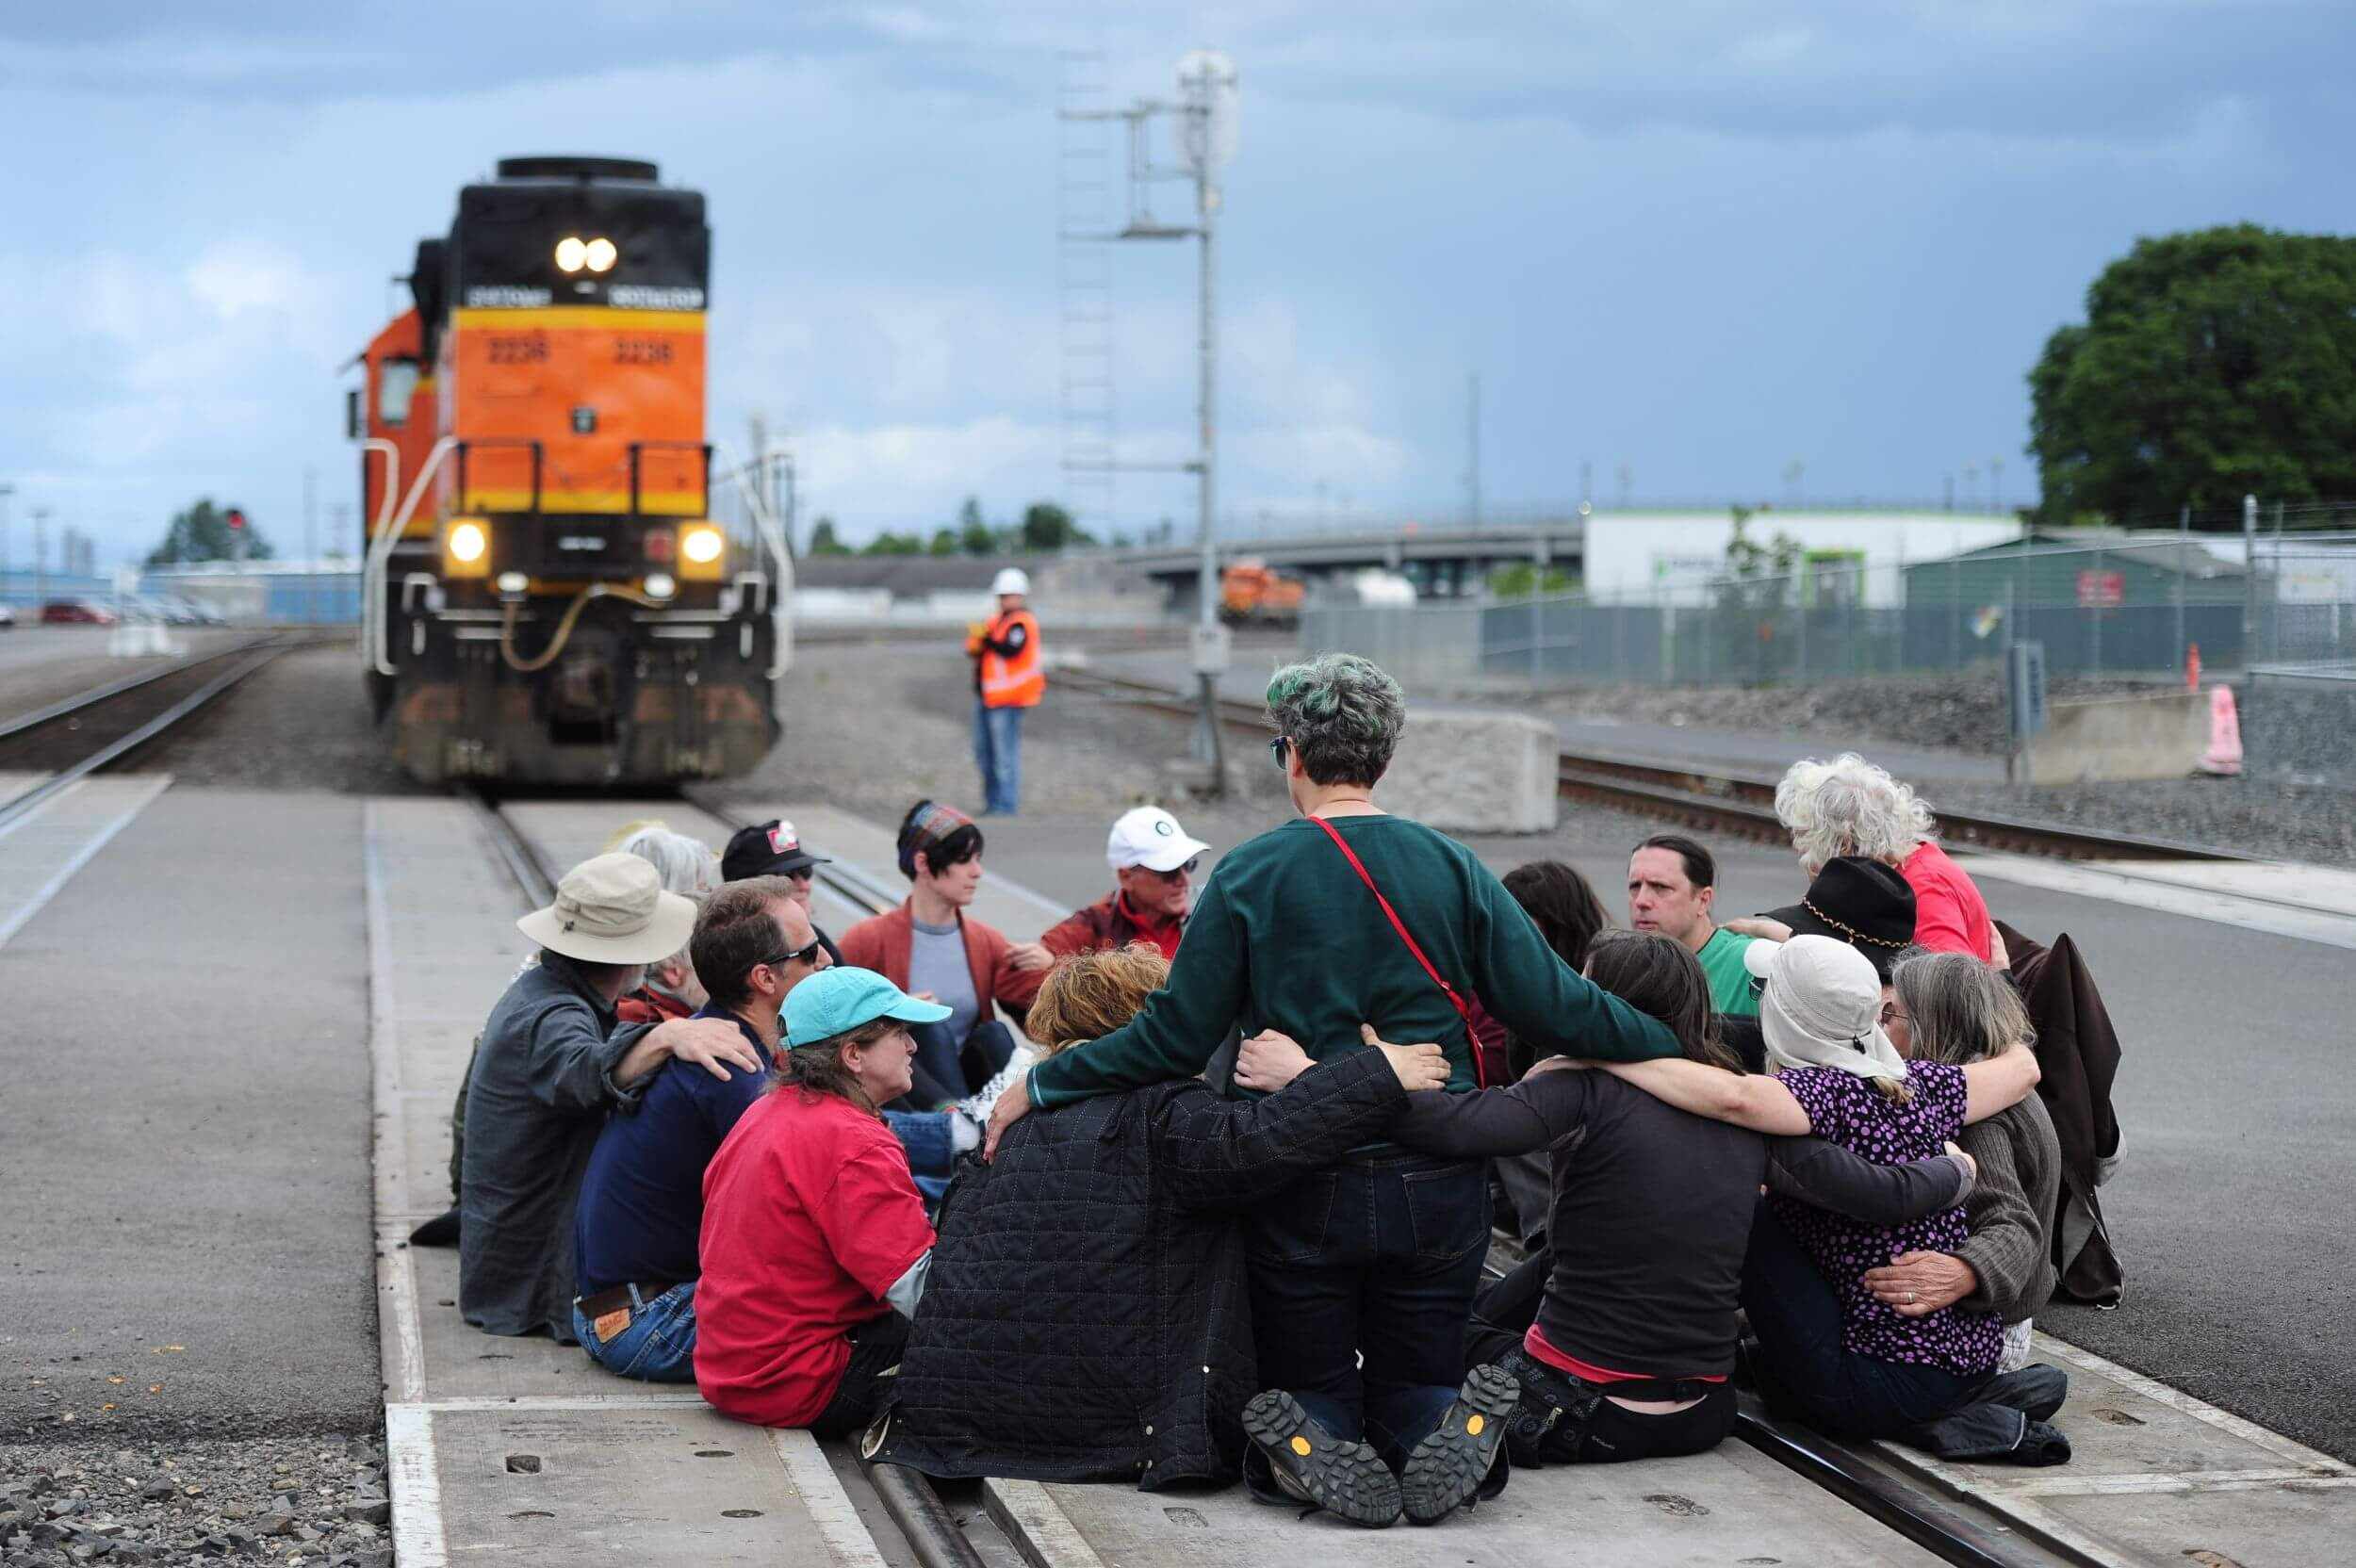 A group of about 16 people sit cross-legged in a circle on a train track, blocking a train from moving past them.